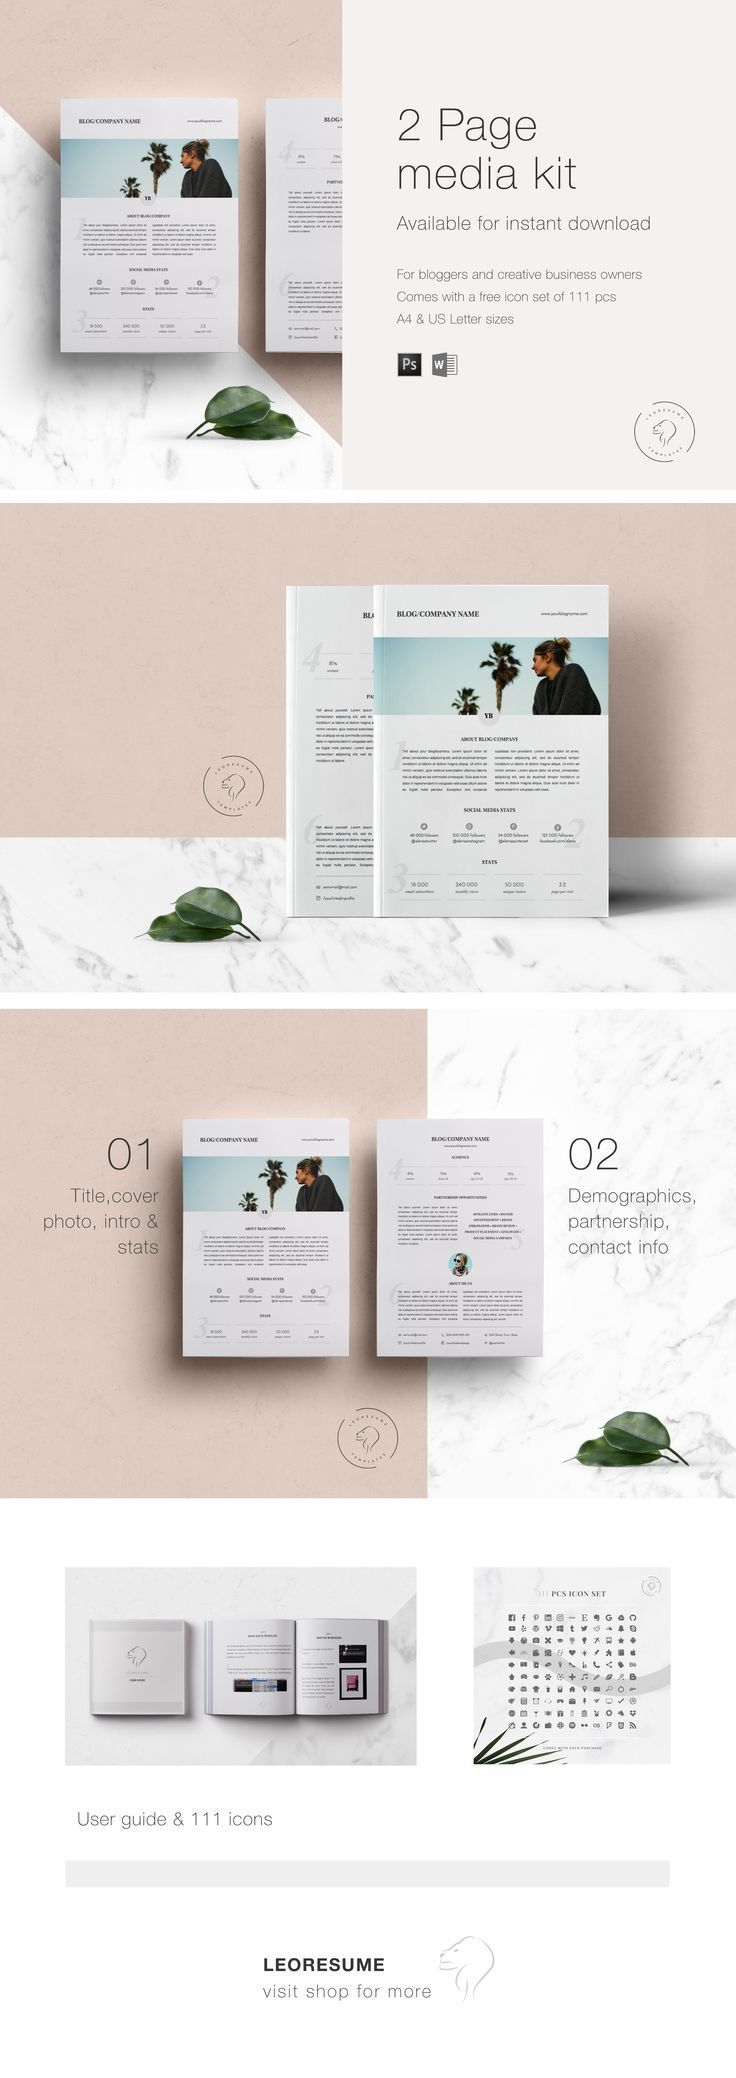 142 best Media Kits images on Pinterest | 5 months, Business and ...